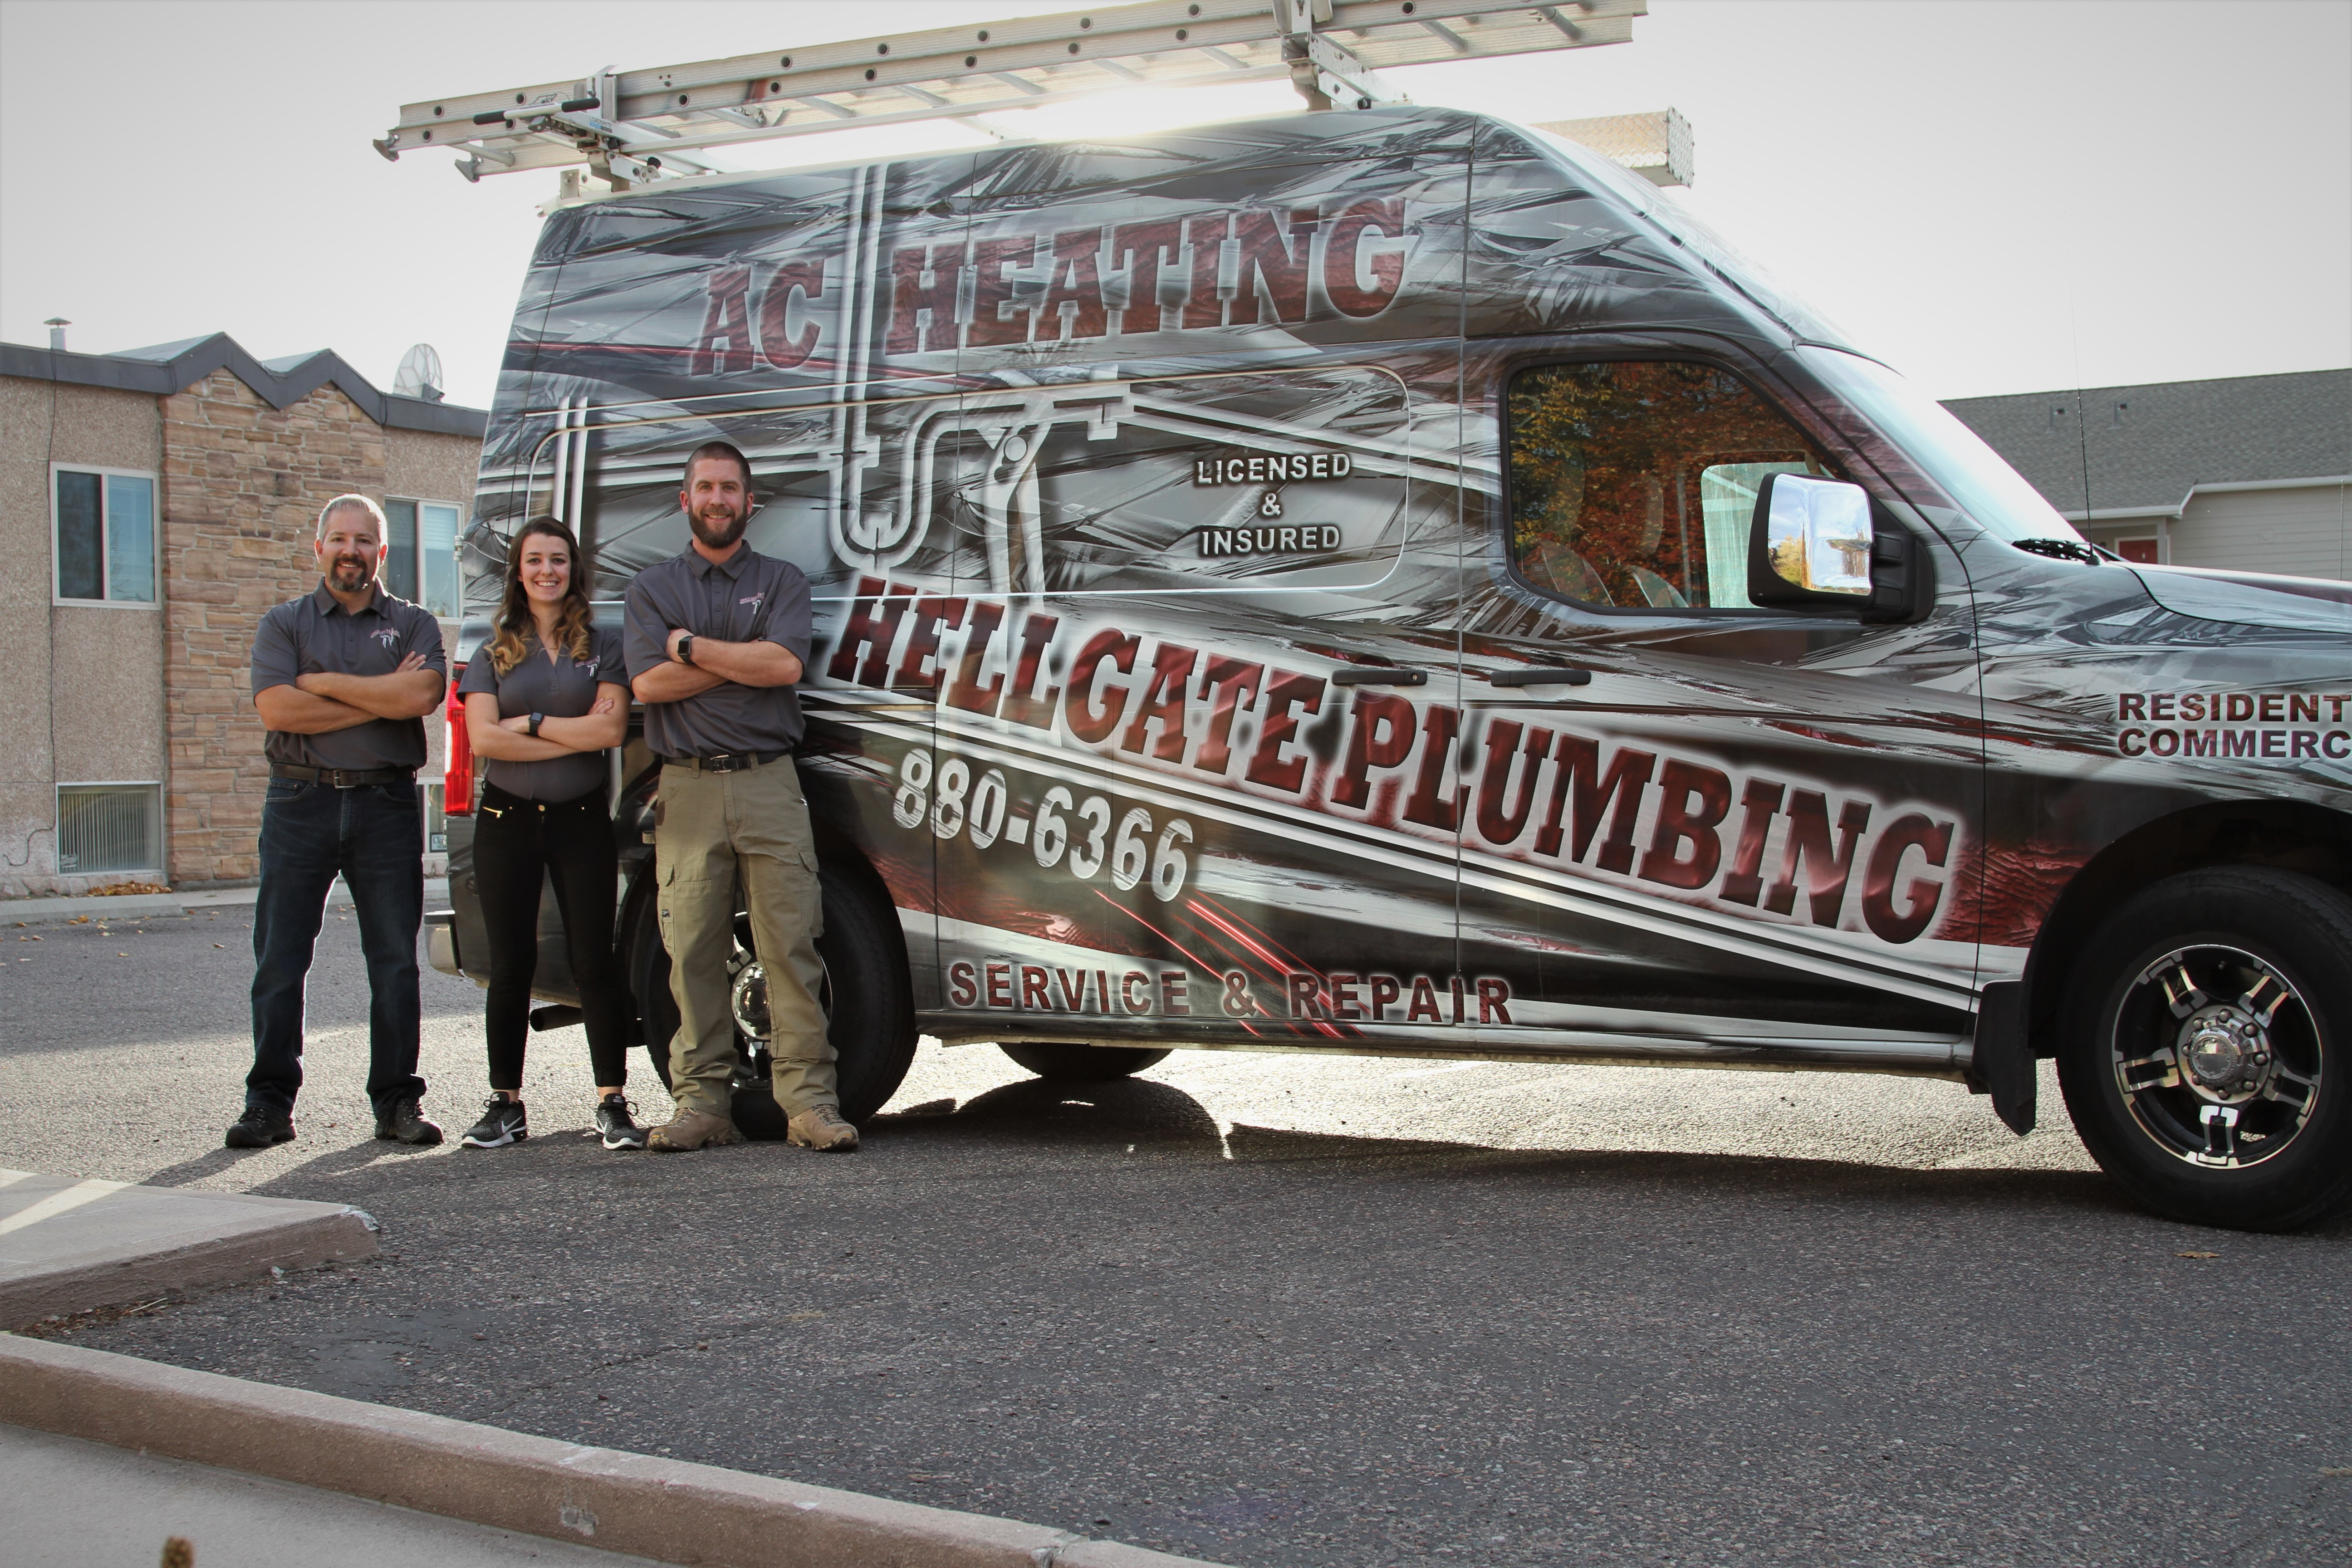 Hellgate Plumbing & Heating/Air INC.